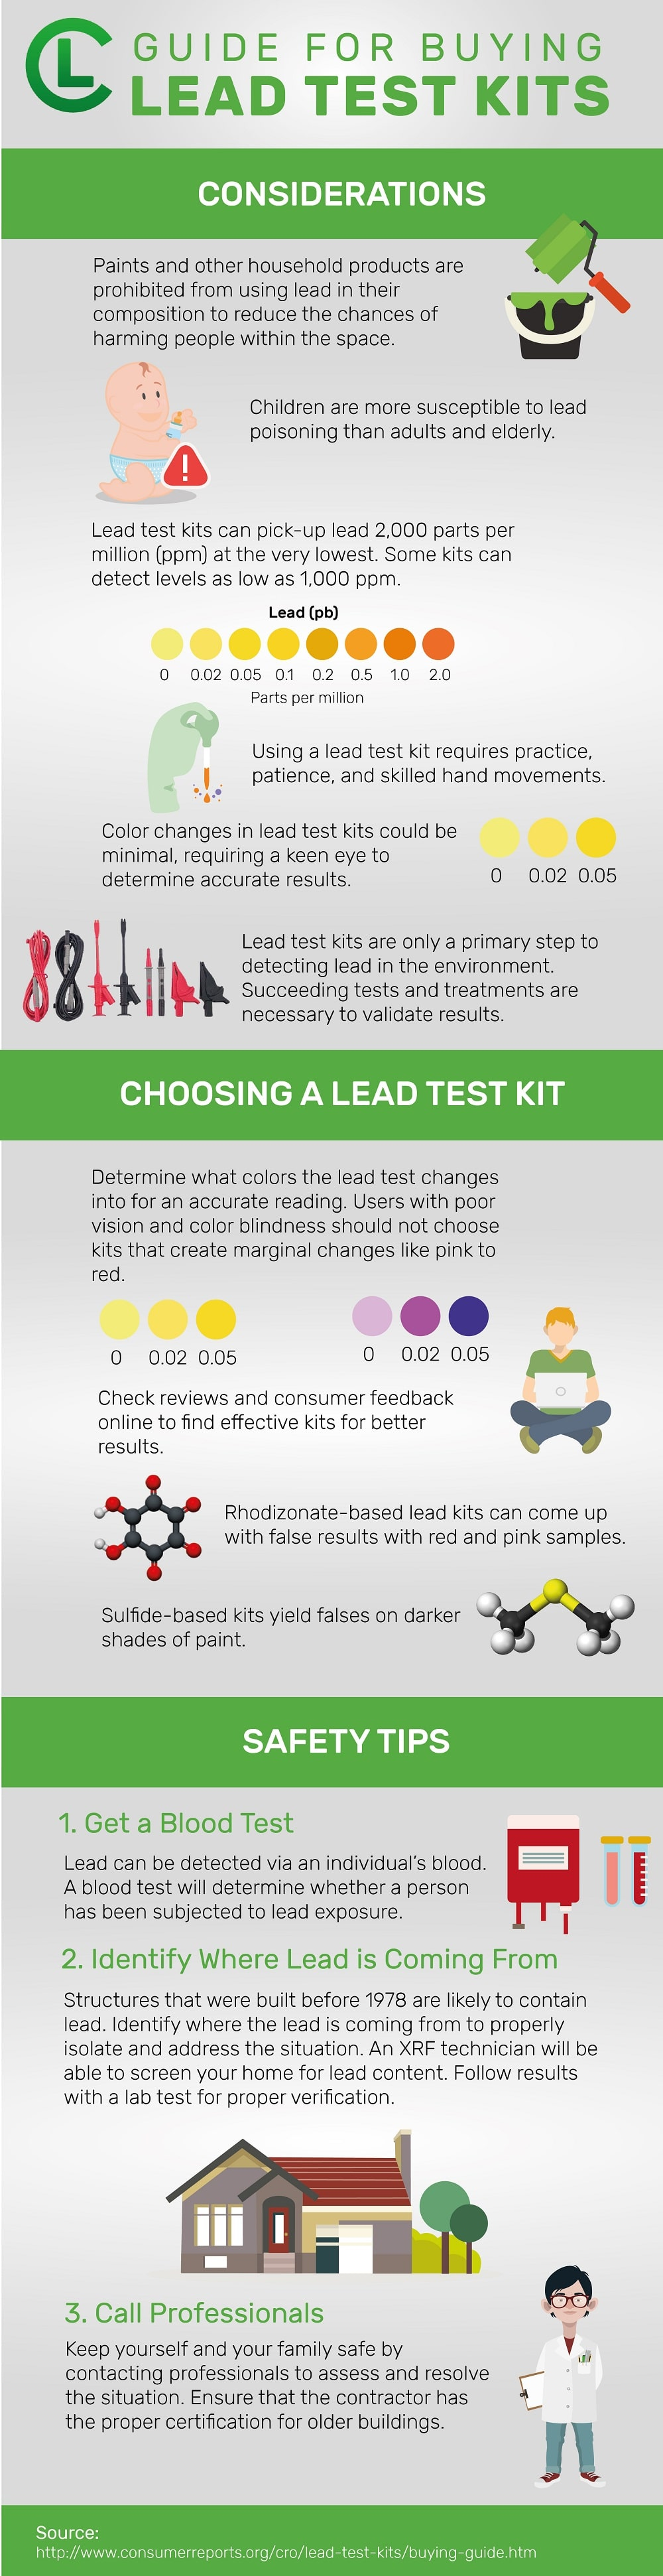 Guide For Buying Lead Test Kits Infographic